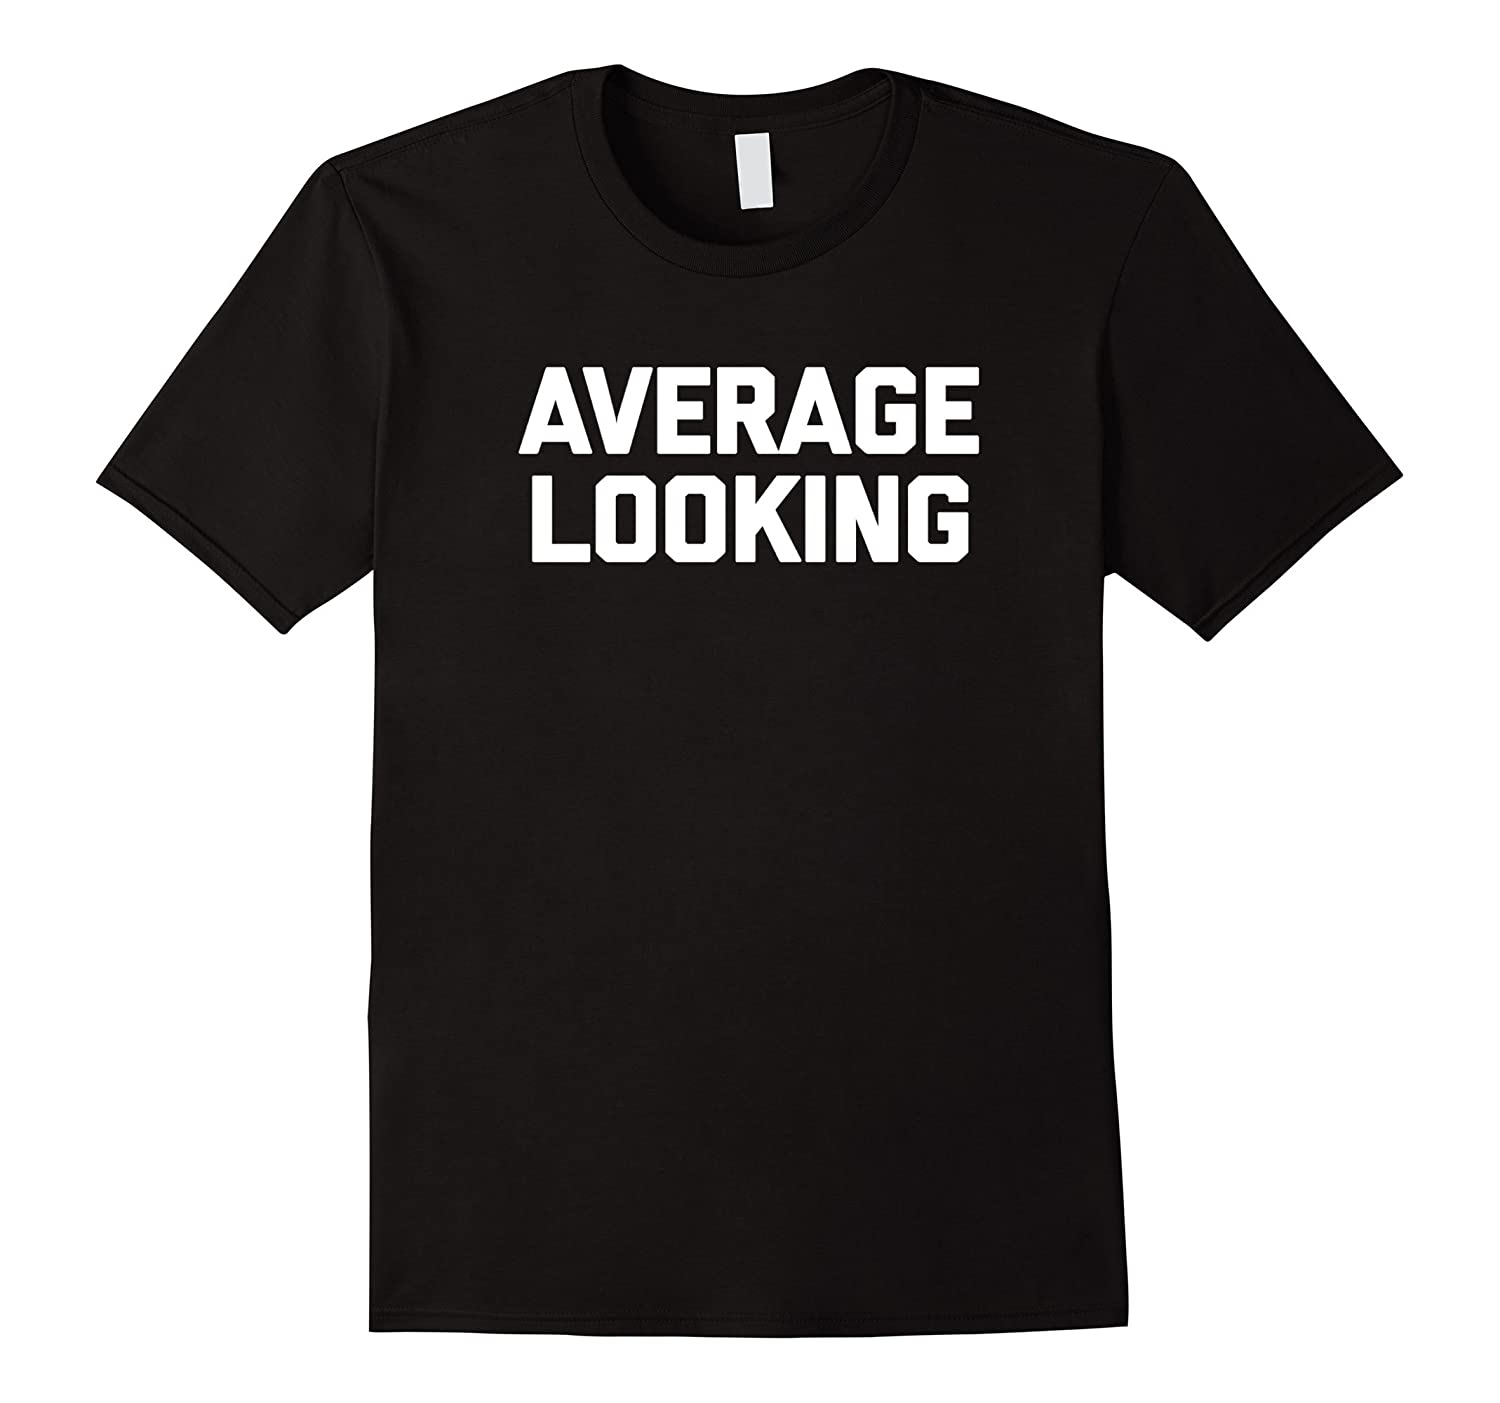 Average Looking T-Shirt funny saying sarcastic novelty humor-FL